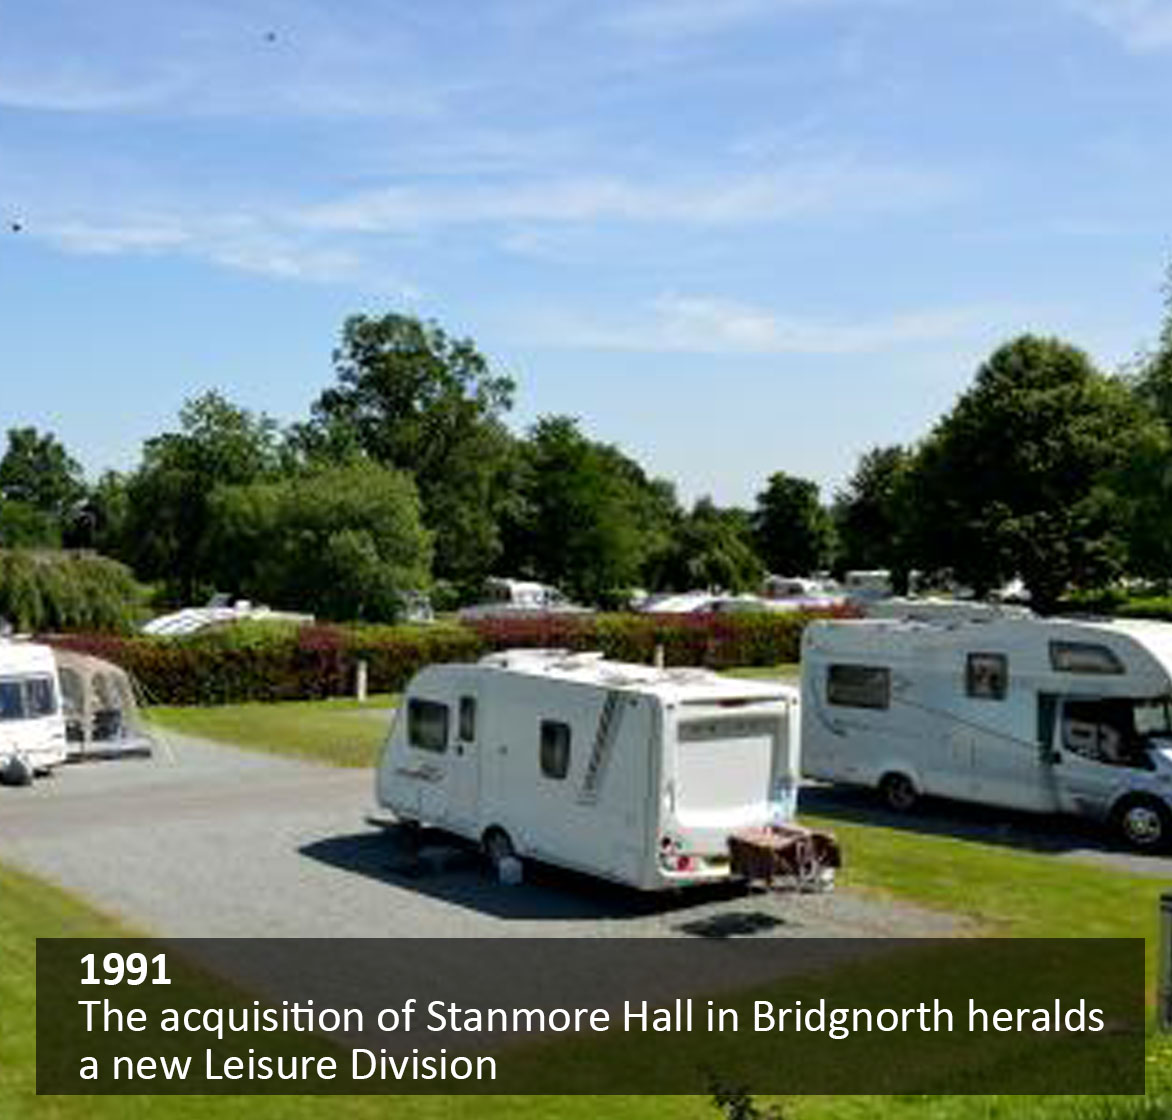 The acquisition of Stanmore Hall in Bridgenorth heralds a new Leisure Division